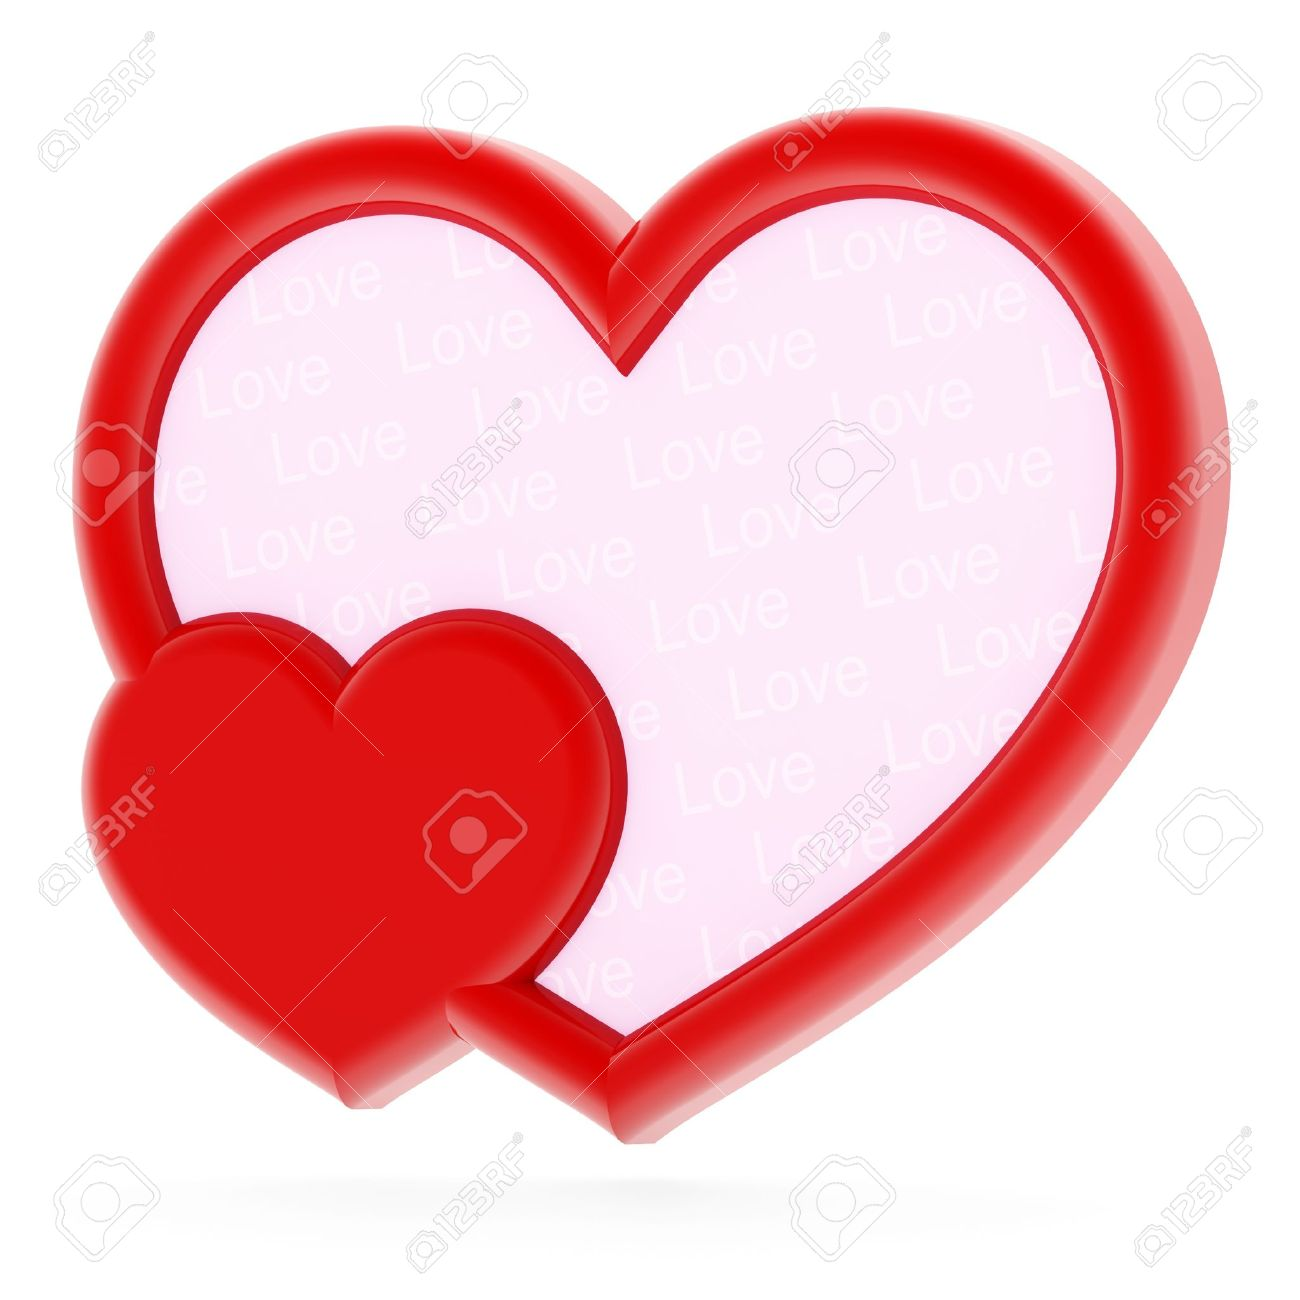 red heart shaped photo frame on white background stock photo 9955660